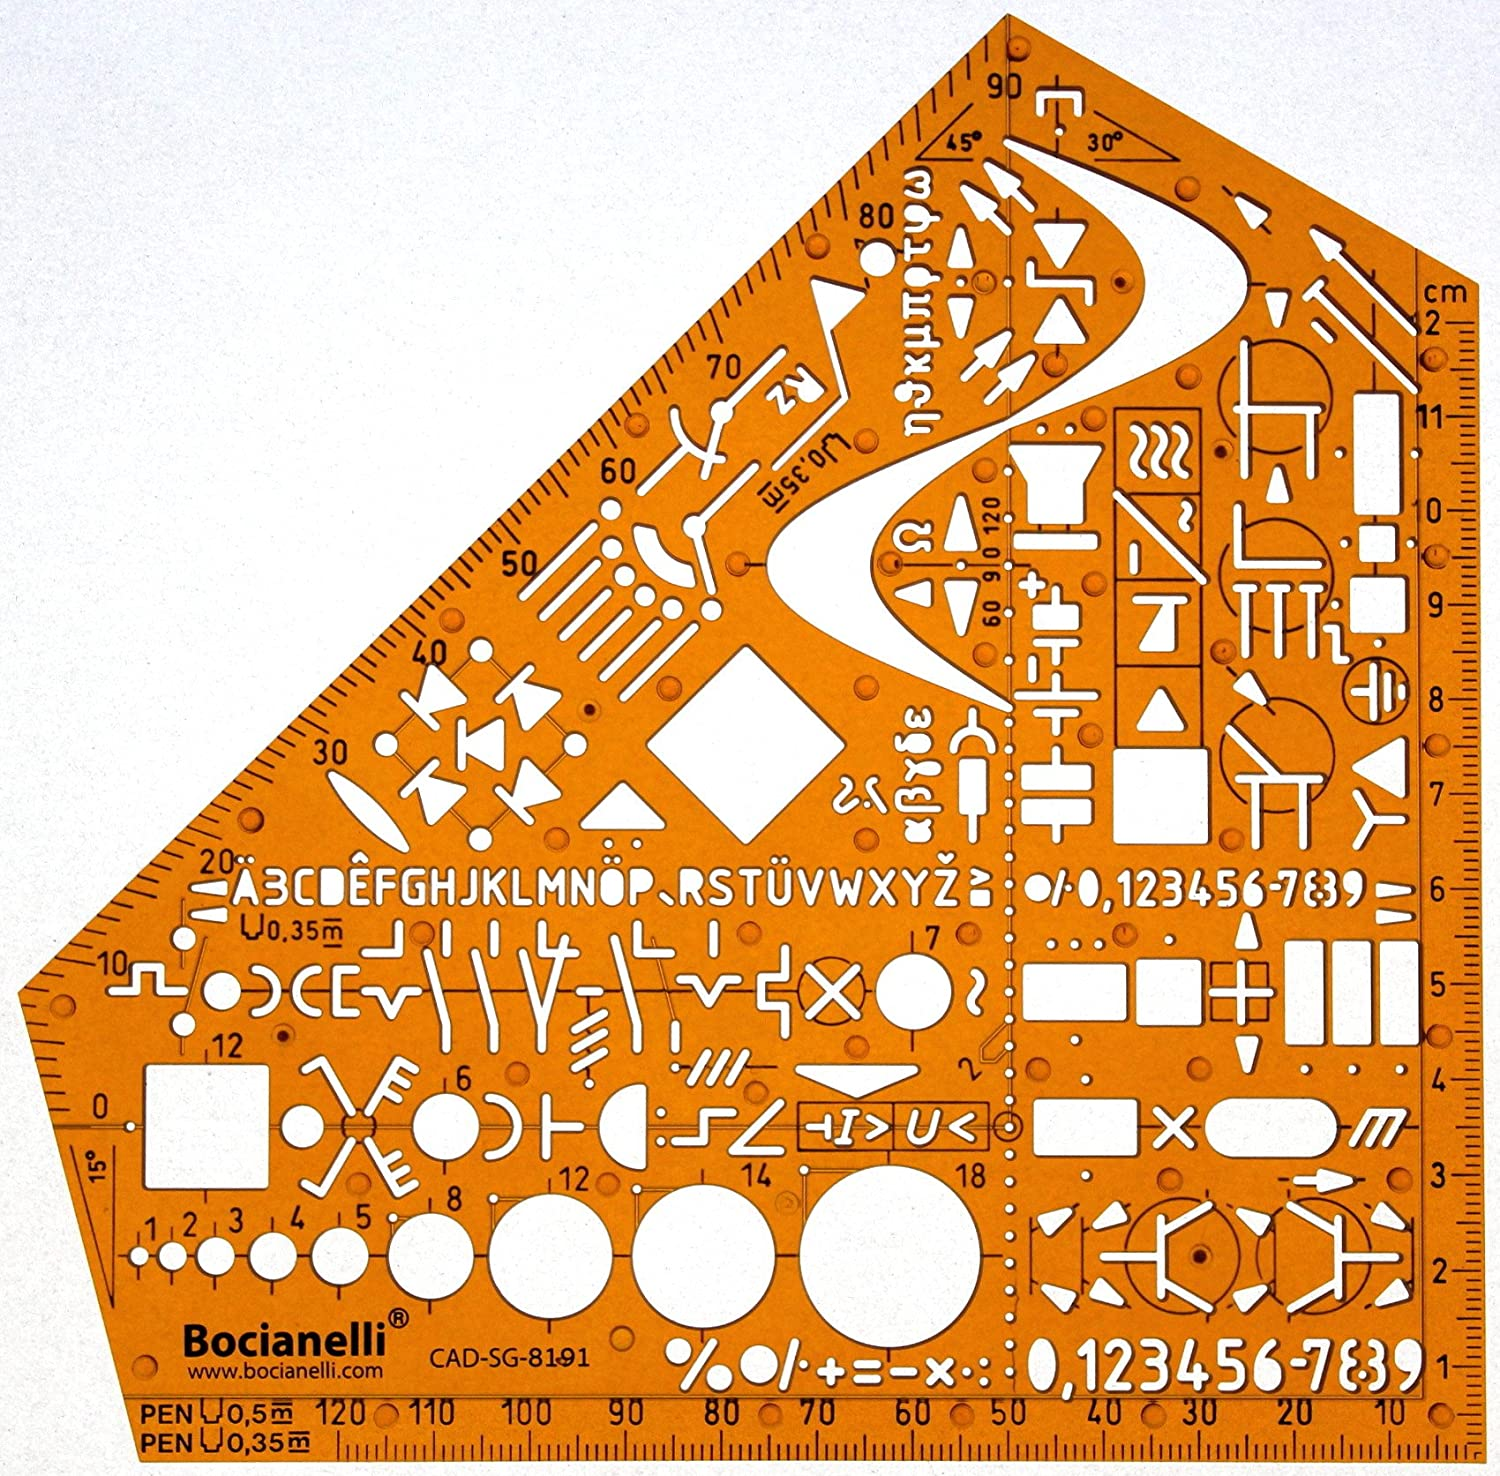 Wiring Diagram German Electrical Schematic Symbols Electrical Wiring